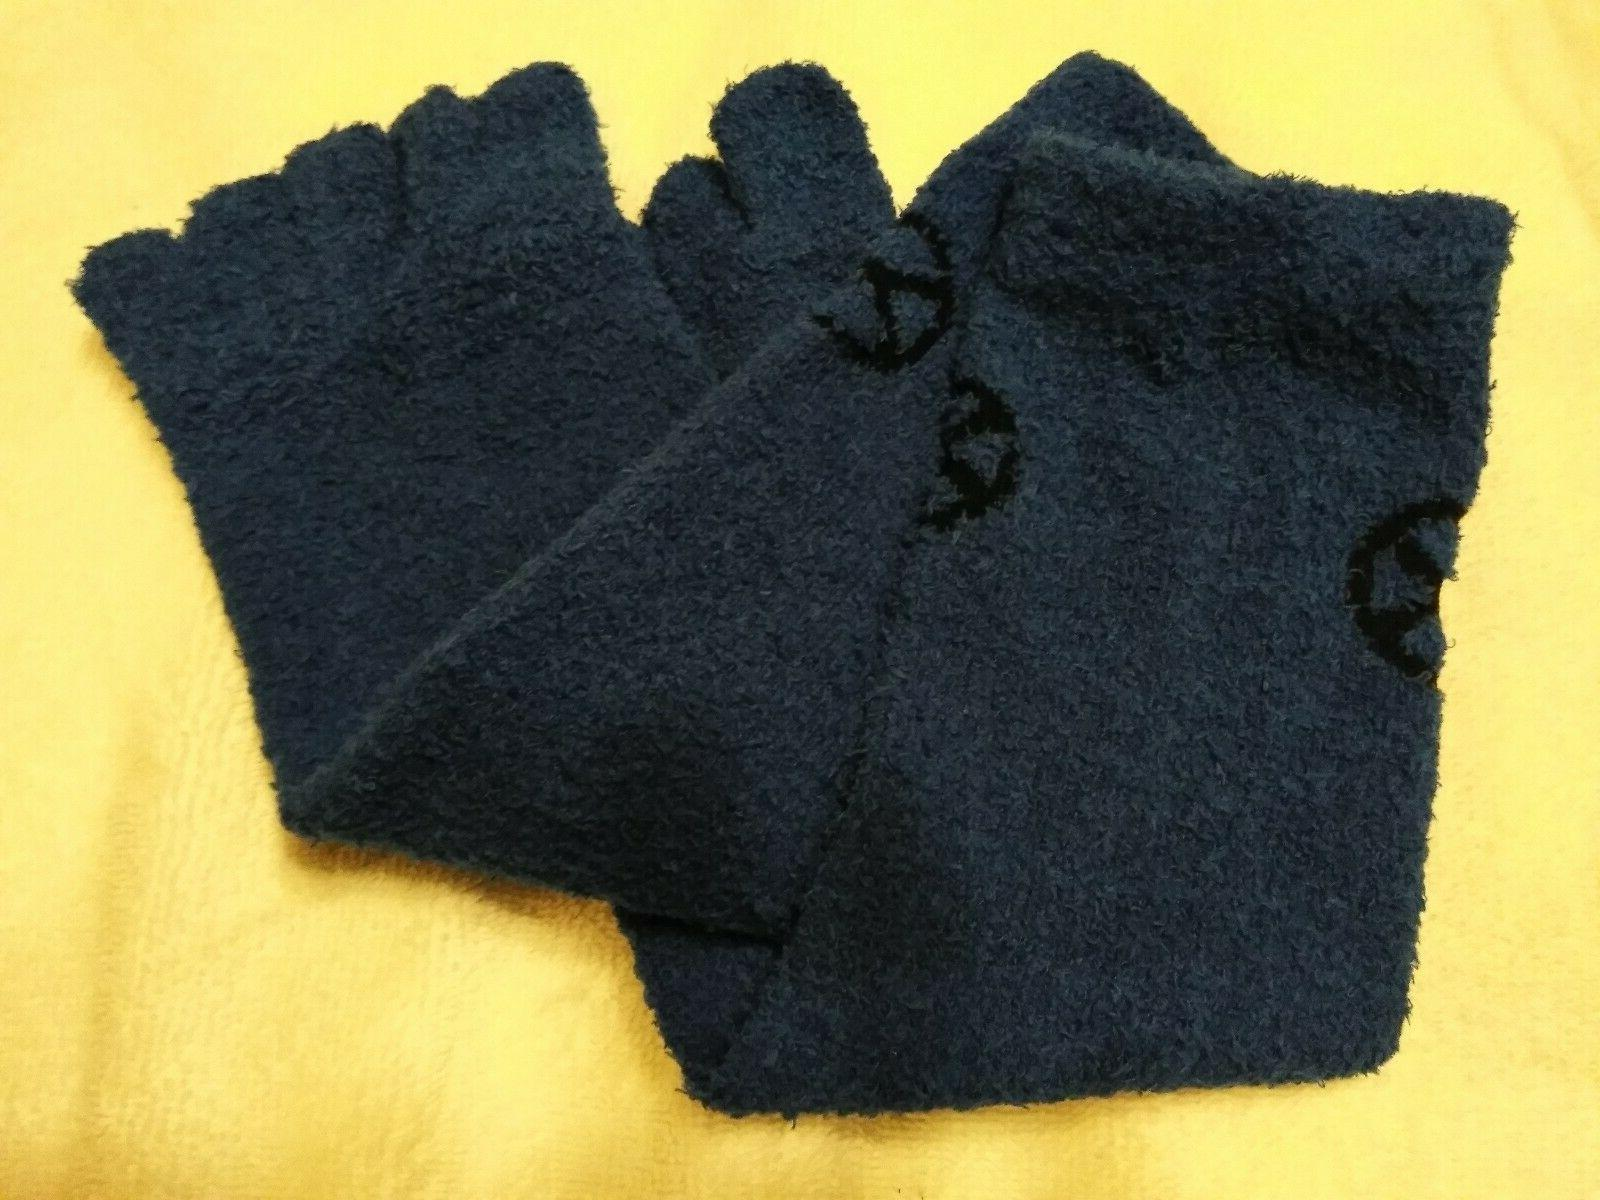 X-Men Fuzzy Socks Marvel Collector Corps Exclusive with toes